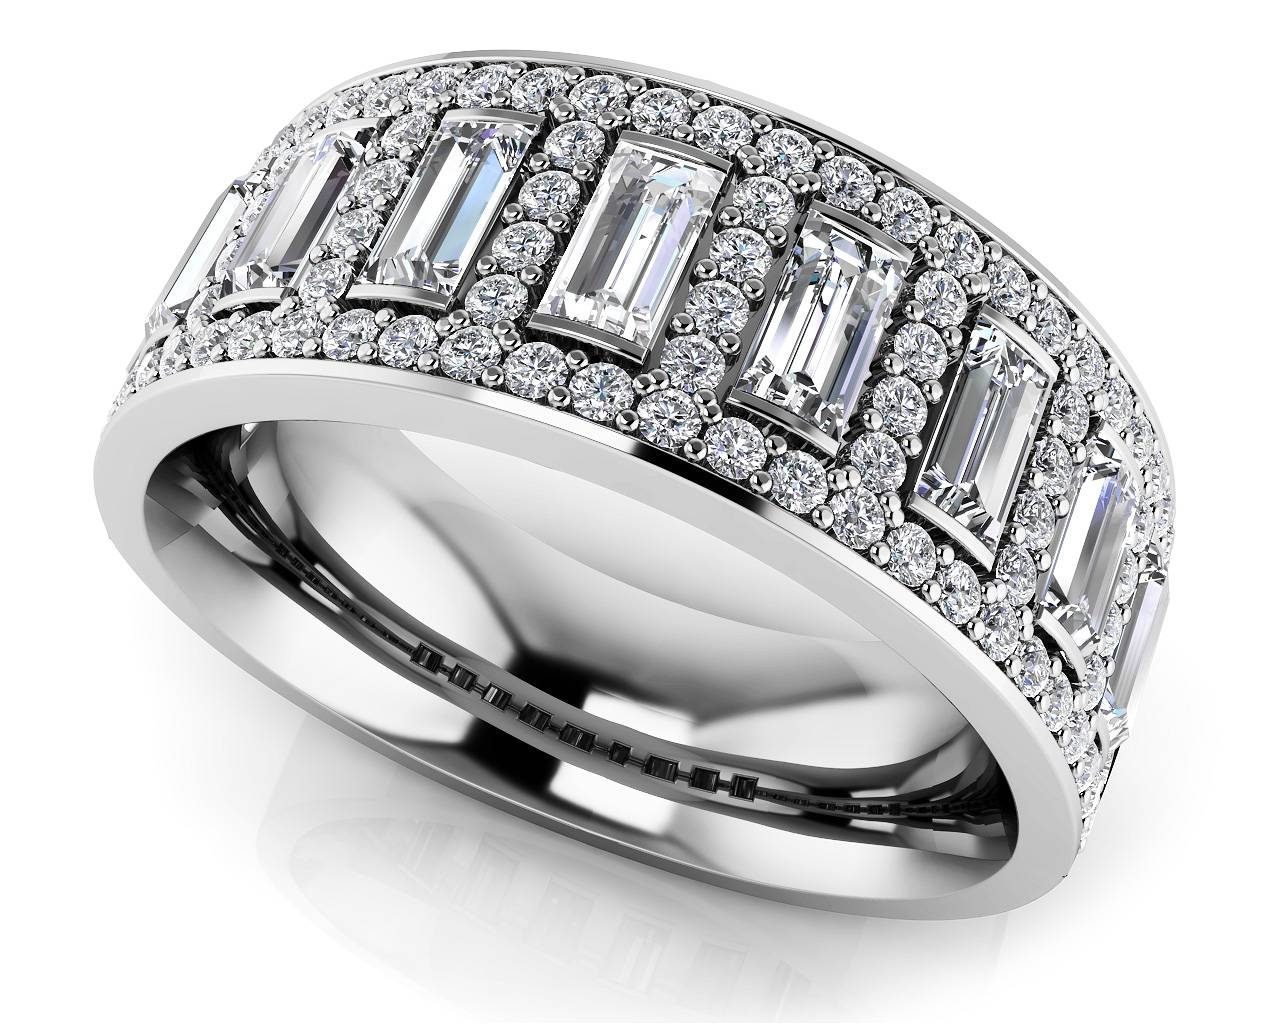 Design Your Own Diamond Anniversary Ring & Eternity Ring For Most Popular Diamond Anniversary Rings (View 4 of 25)